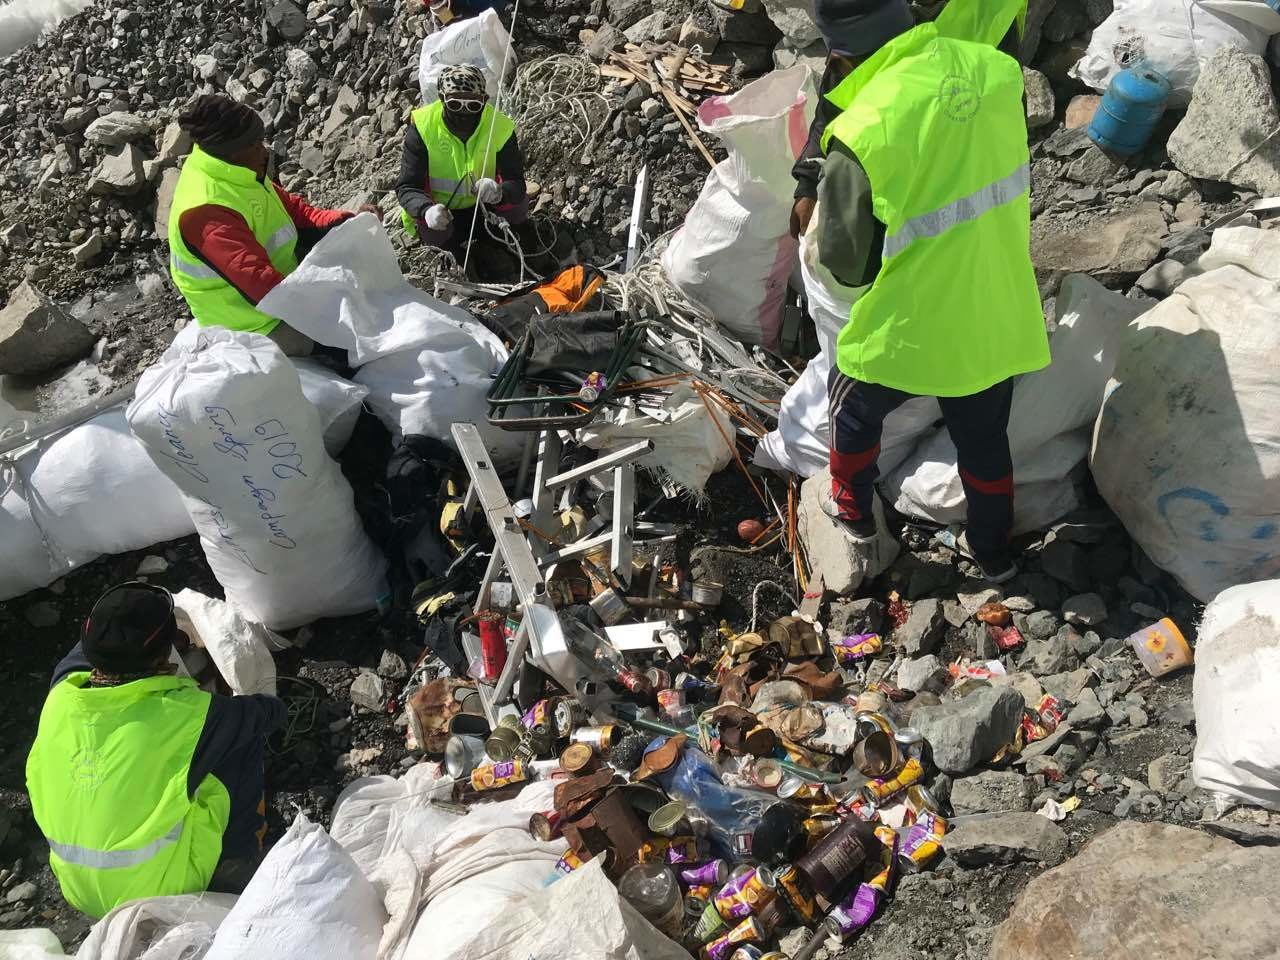 Oxygen bottles, old tents, broken ladders and more were found during the Everest clean-up.